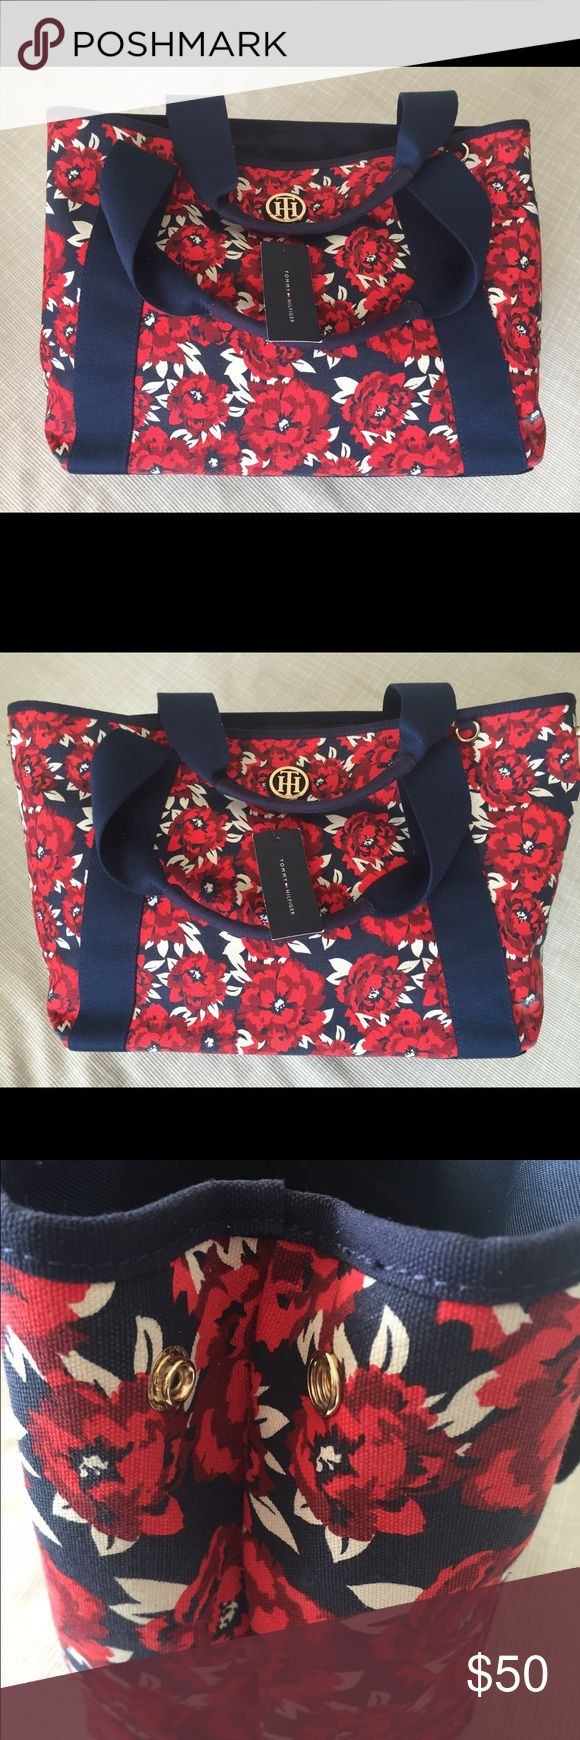 Tommy Hilfiger Floral Tote Bag Navy blue, red and off white. This floral Tommy Hilfiger canvas bag is perfect for the beach or lunch with friends! Grab this brand spankin' new beautiful bag for nearly half off retail price! 🌹🌹🌹🌹🌹🌹 Tommy Hilfiger Bags Totes